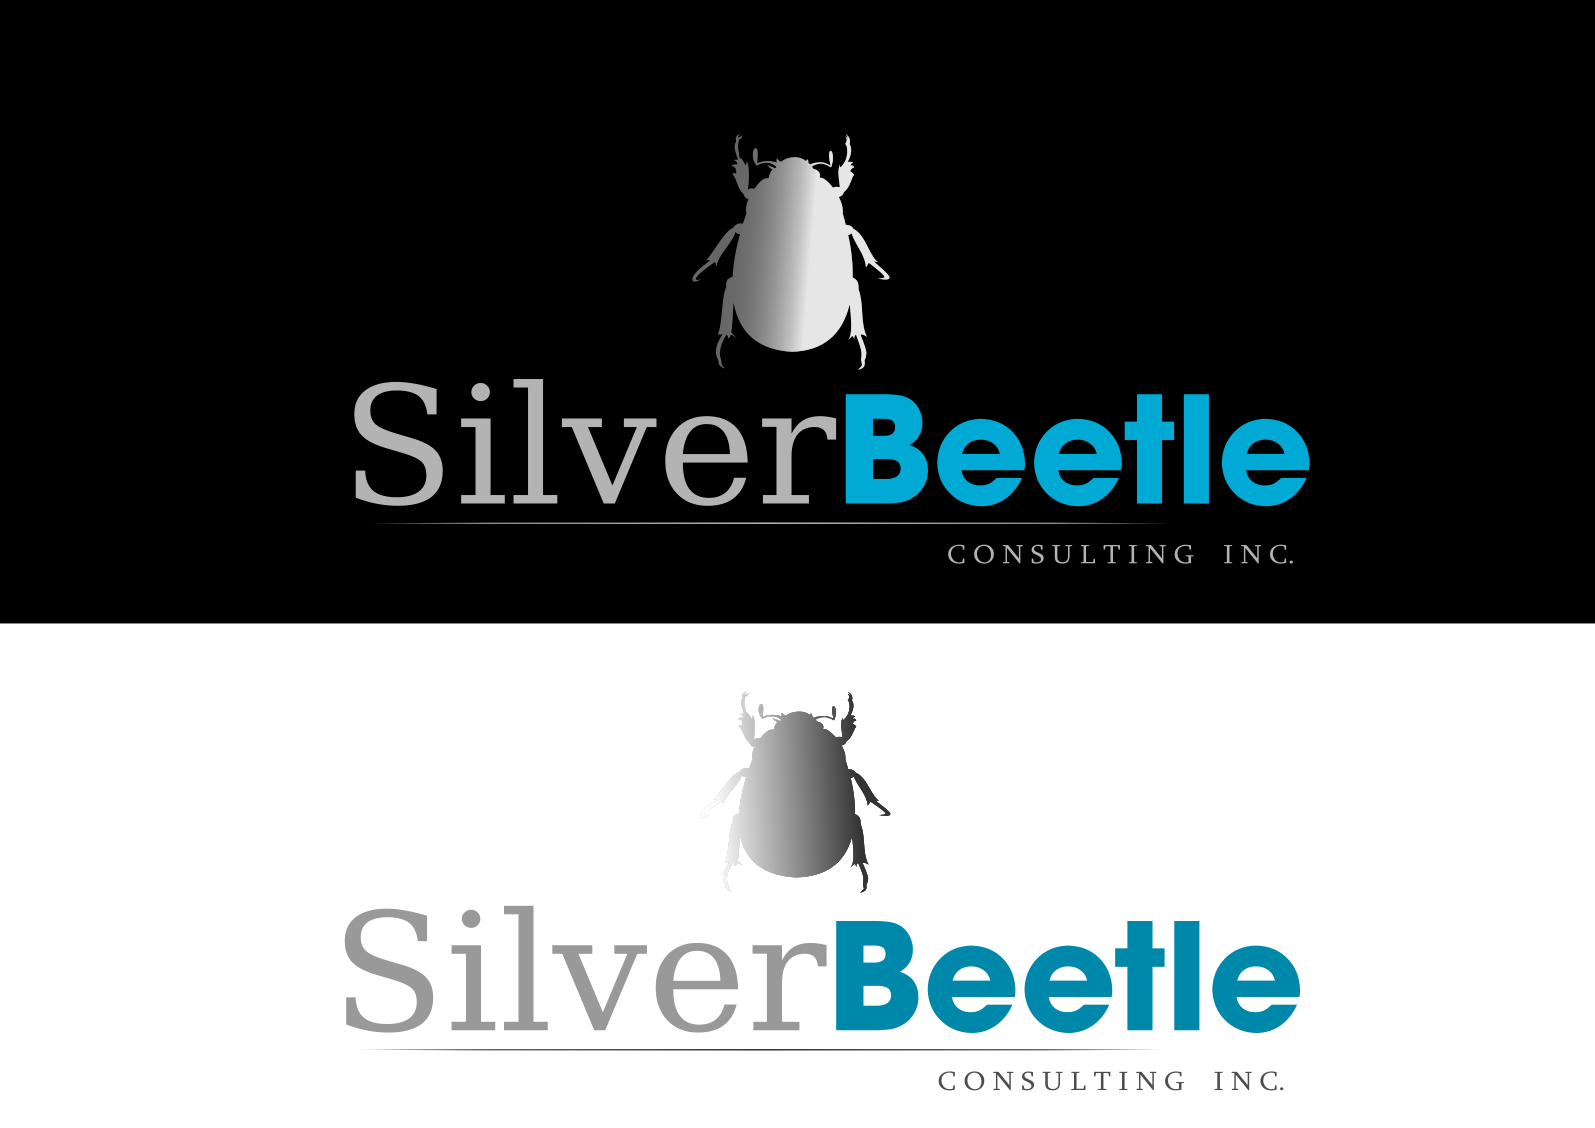 Logo Design by whoosef - Entry No. 130 in the Logo Design Contest Silver Beetle Consulting Inc. Logo Design.